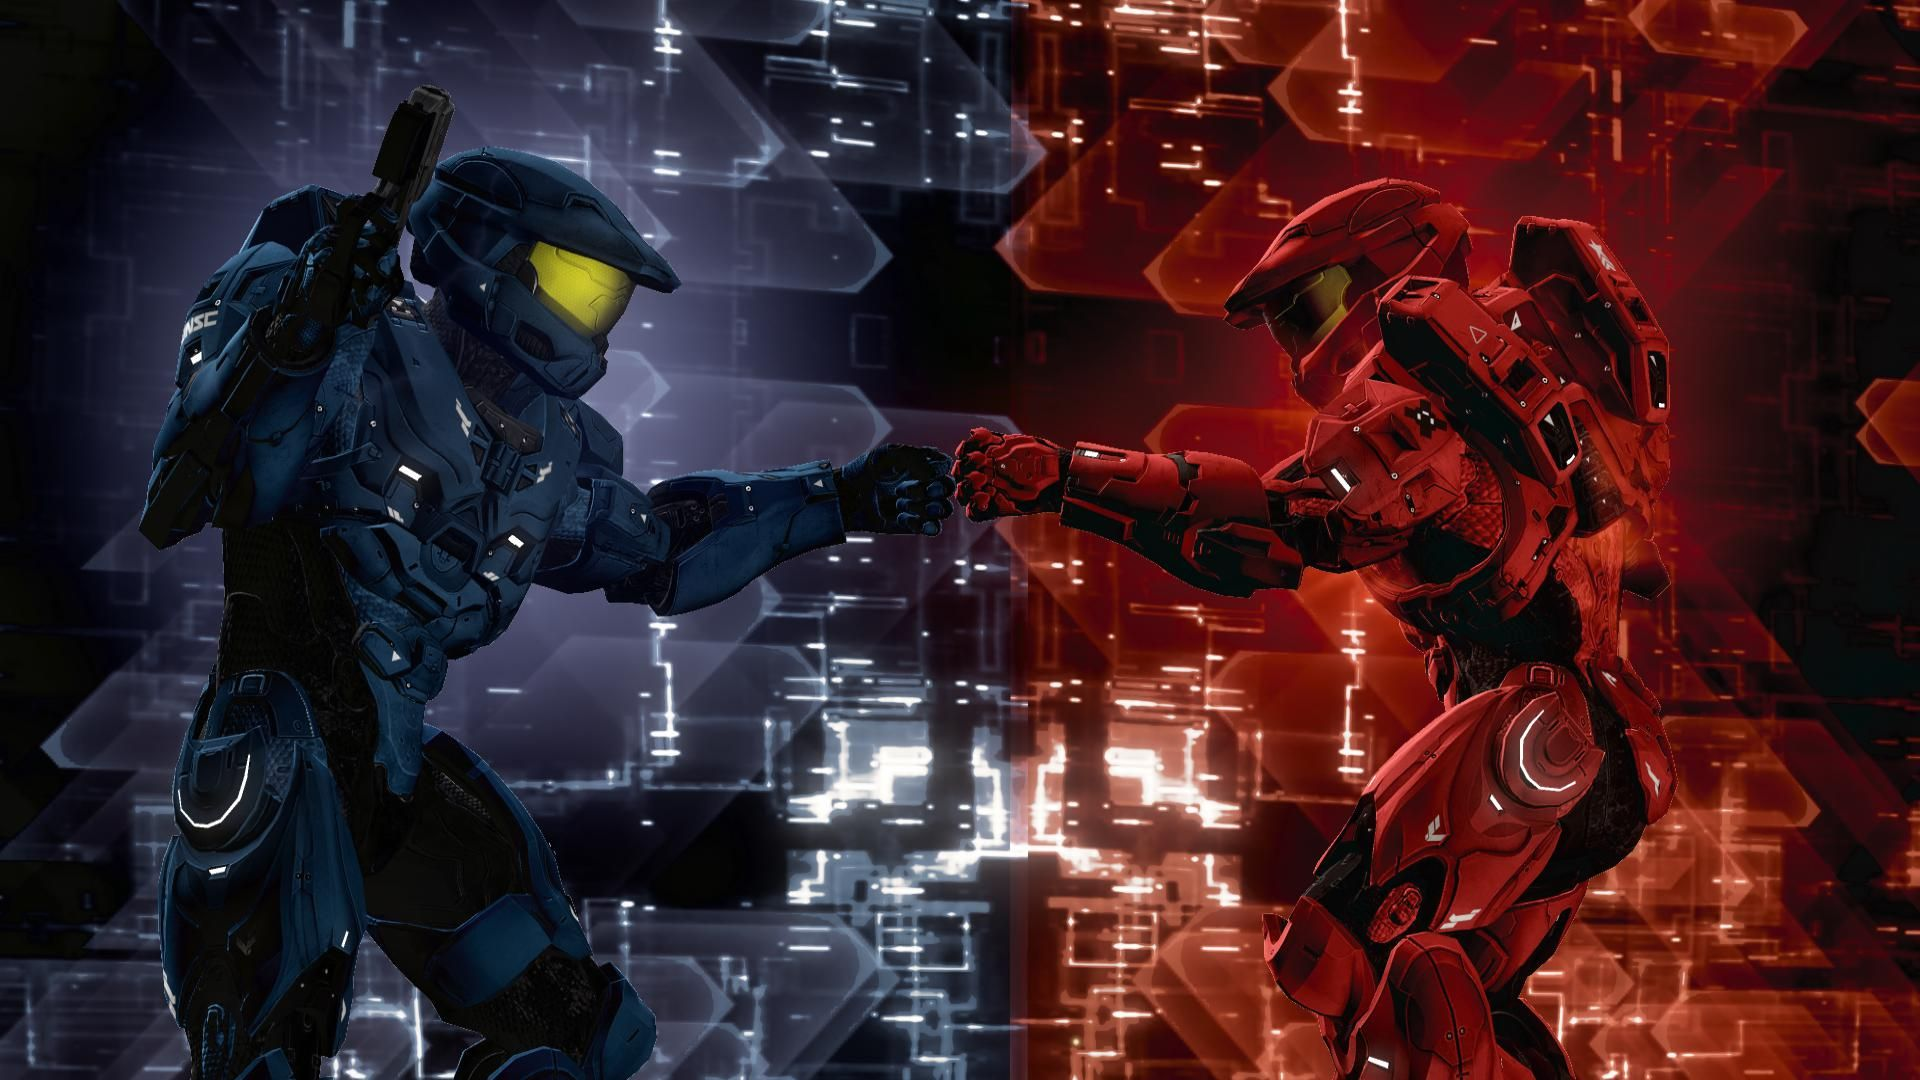 Http Halofanforlife Com Wp Content Uploads 1 8 14 09 Jpg Red Vs Blue Cool Wallpapers For Pc Blue Wallpapers